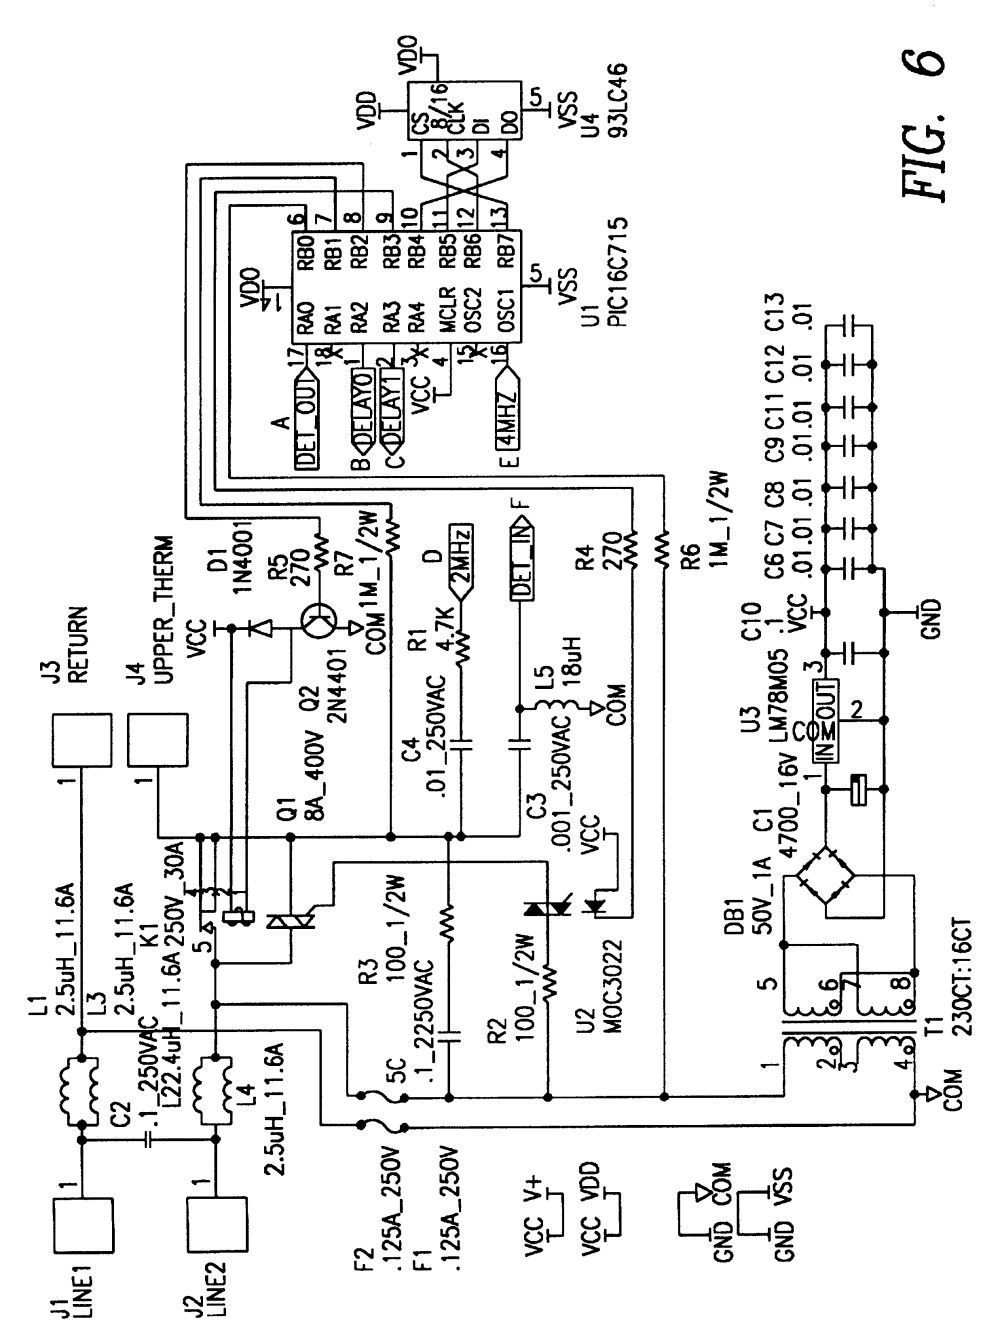 medium resolution of  whelen siren wrg 6786 9b pin mini din wiring diagram on whelen 9000 series wiring diagram wiring diagram for whelen 295hfsa1